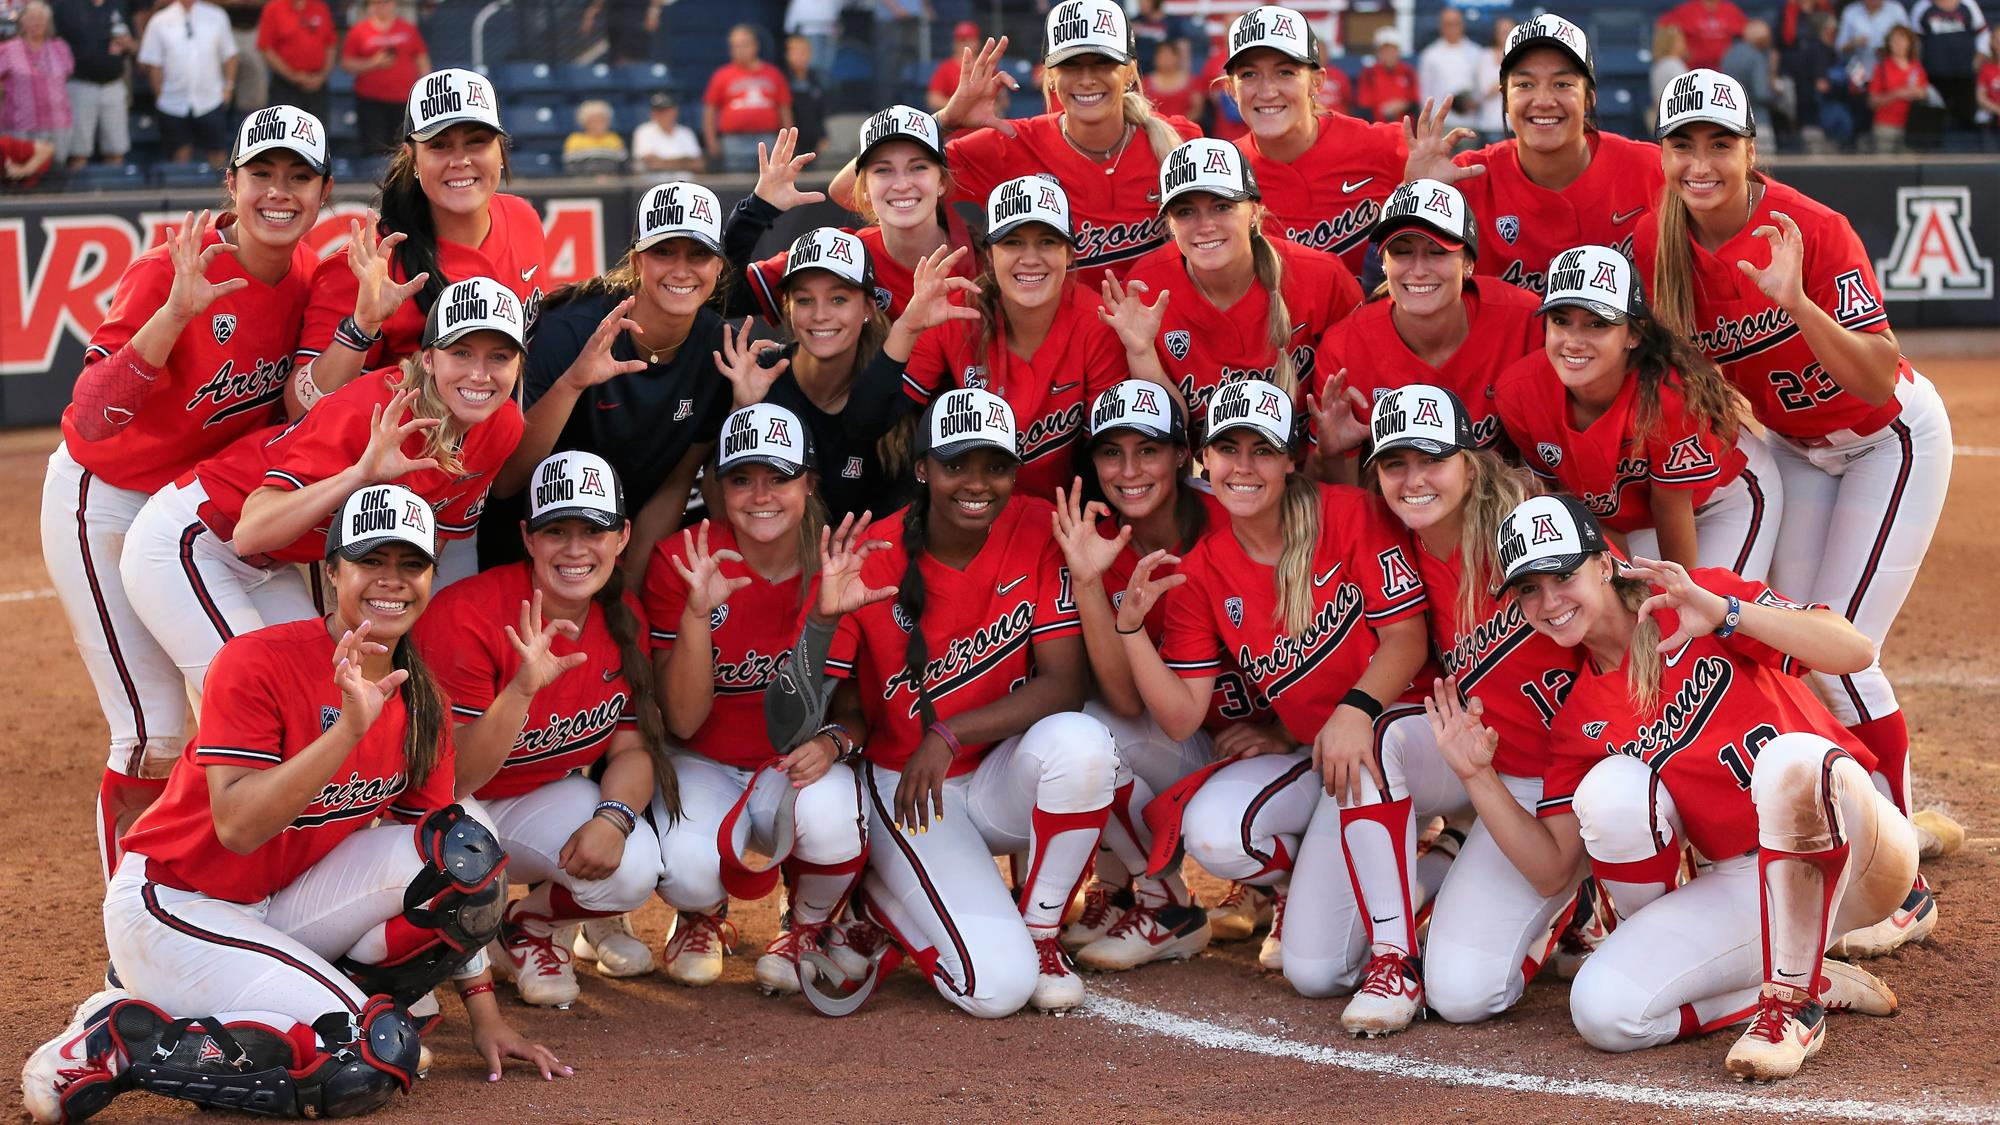 Softball - University of Arizona Athletics